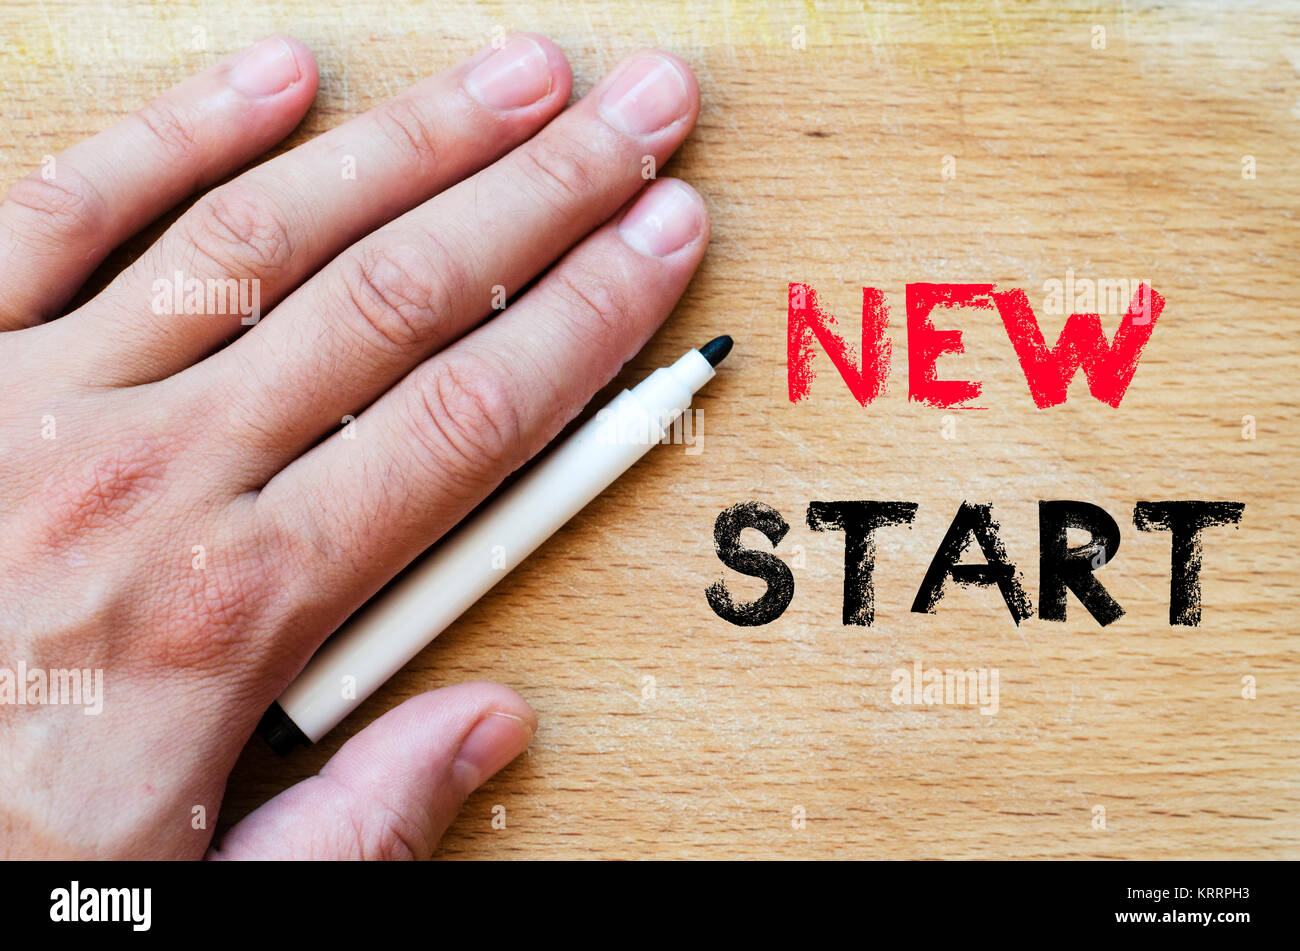 New start text concept - Stock Image